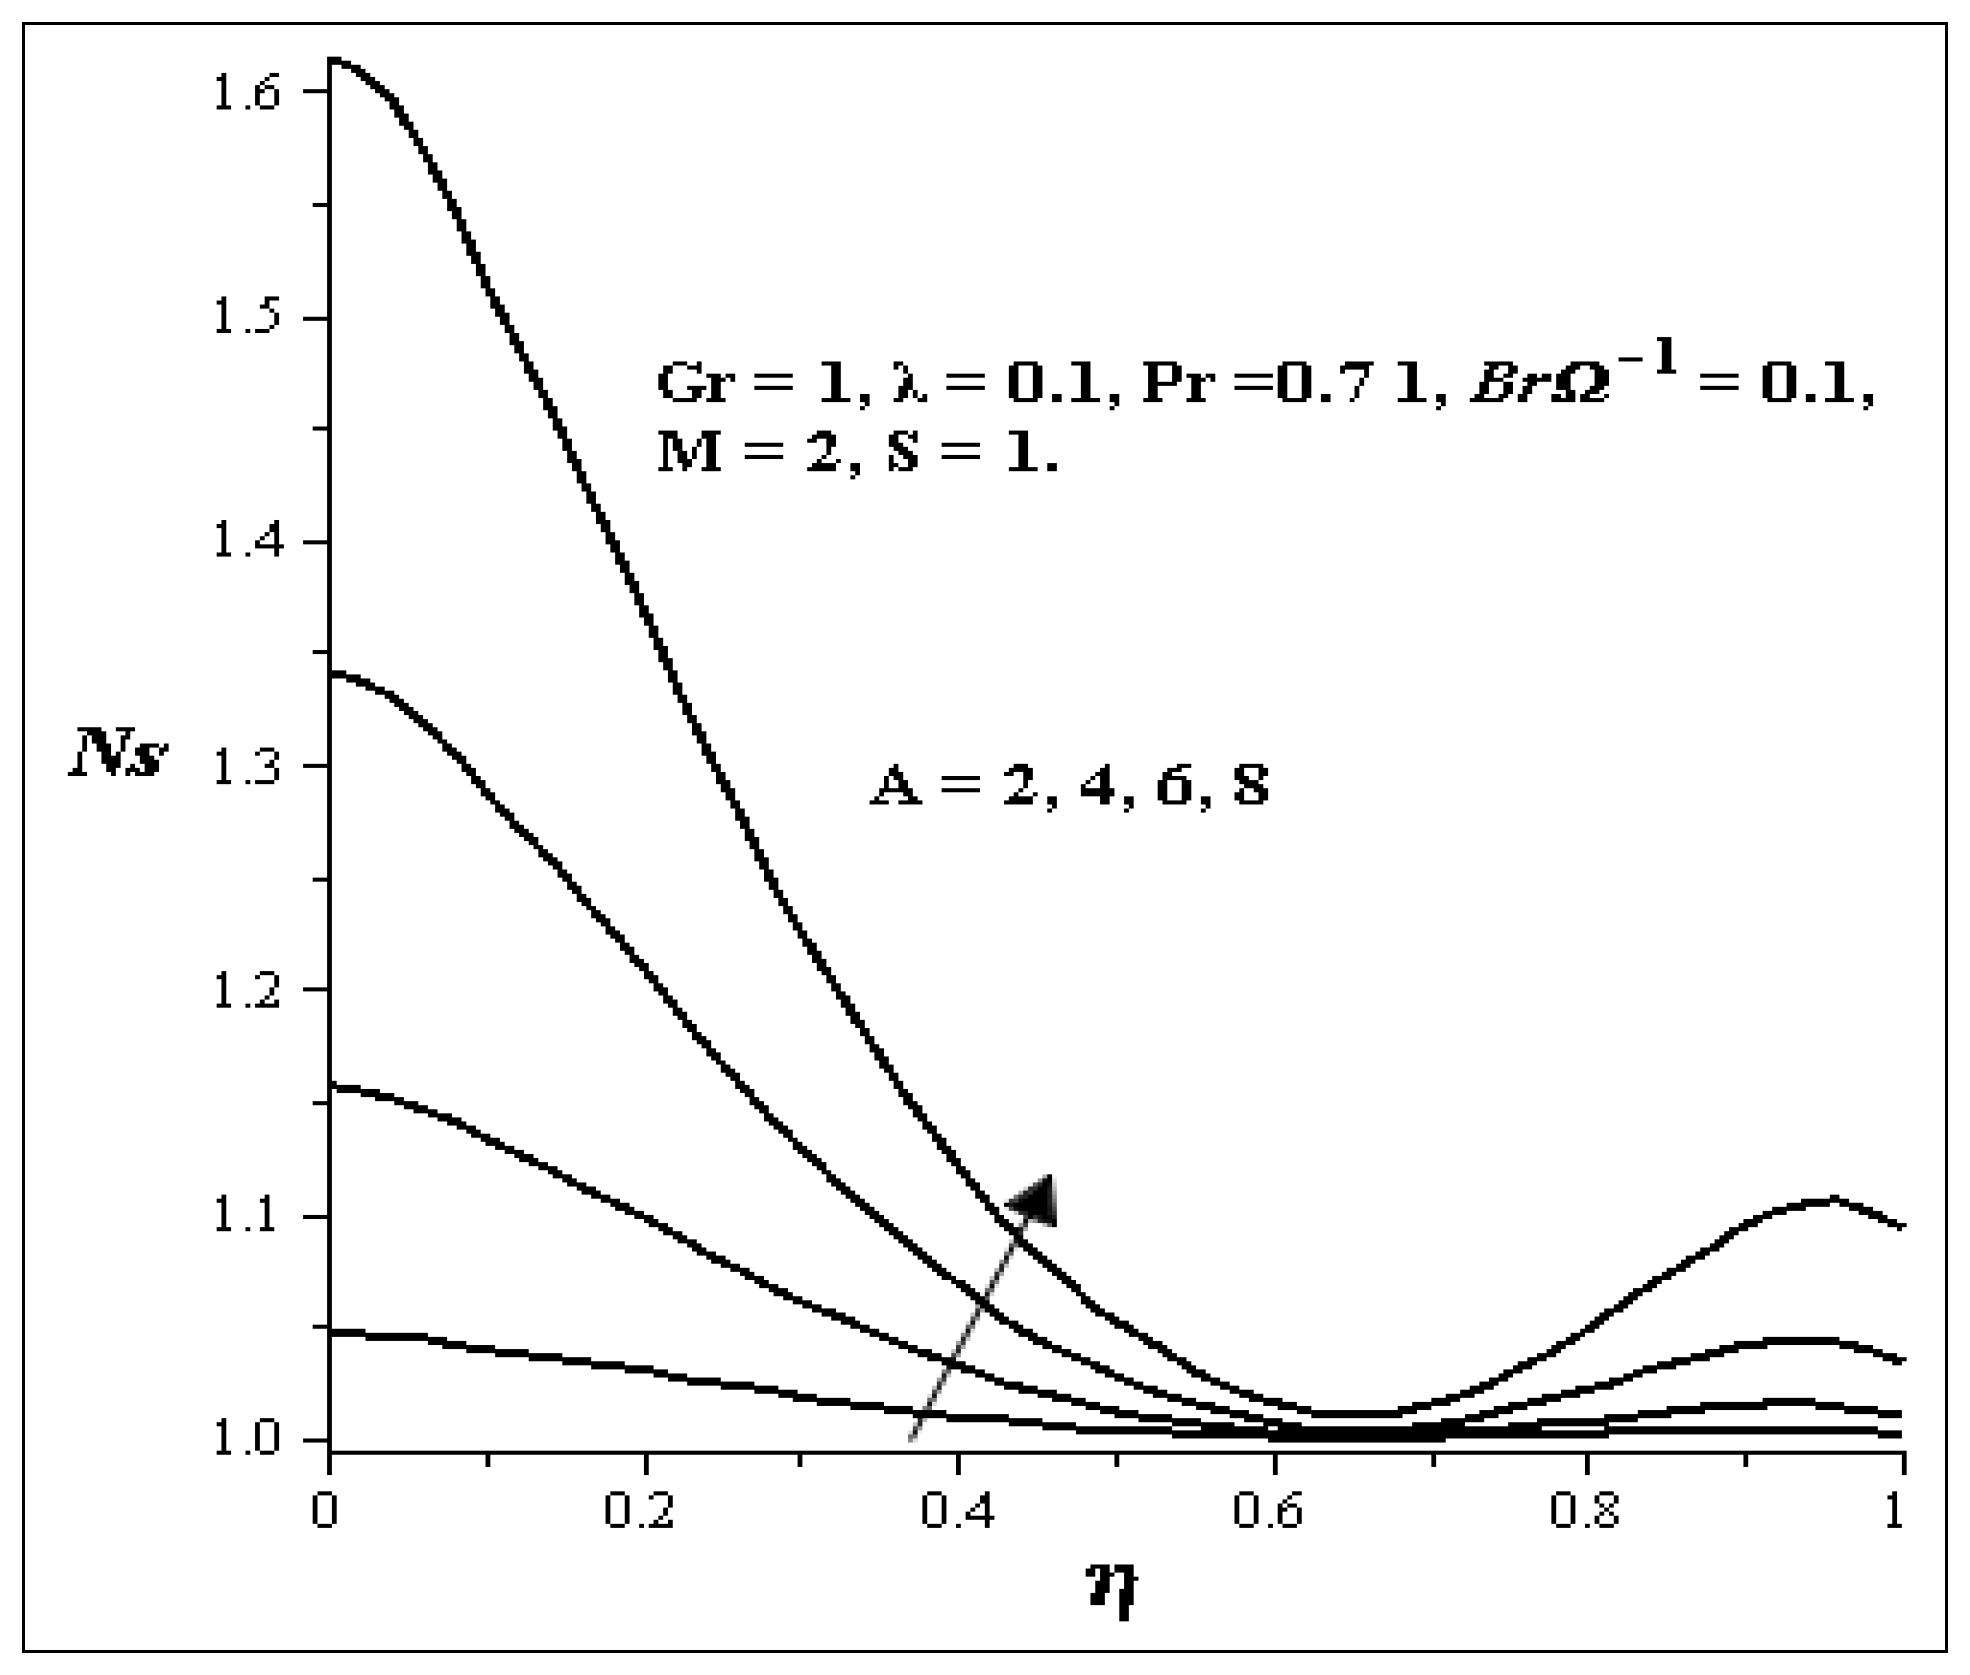 entropy and the second law of thermodynamics All irreversible (natural and spontaneous) processes are characterized by the fact that entropy always increases in such processes and the second law of thermodynamics logically means that entropy always tends to increase.